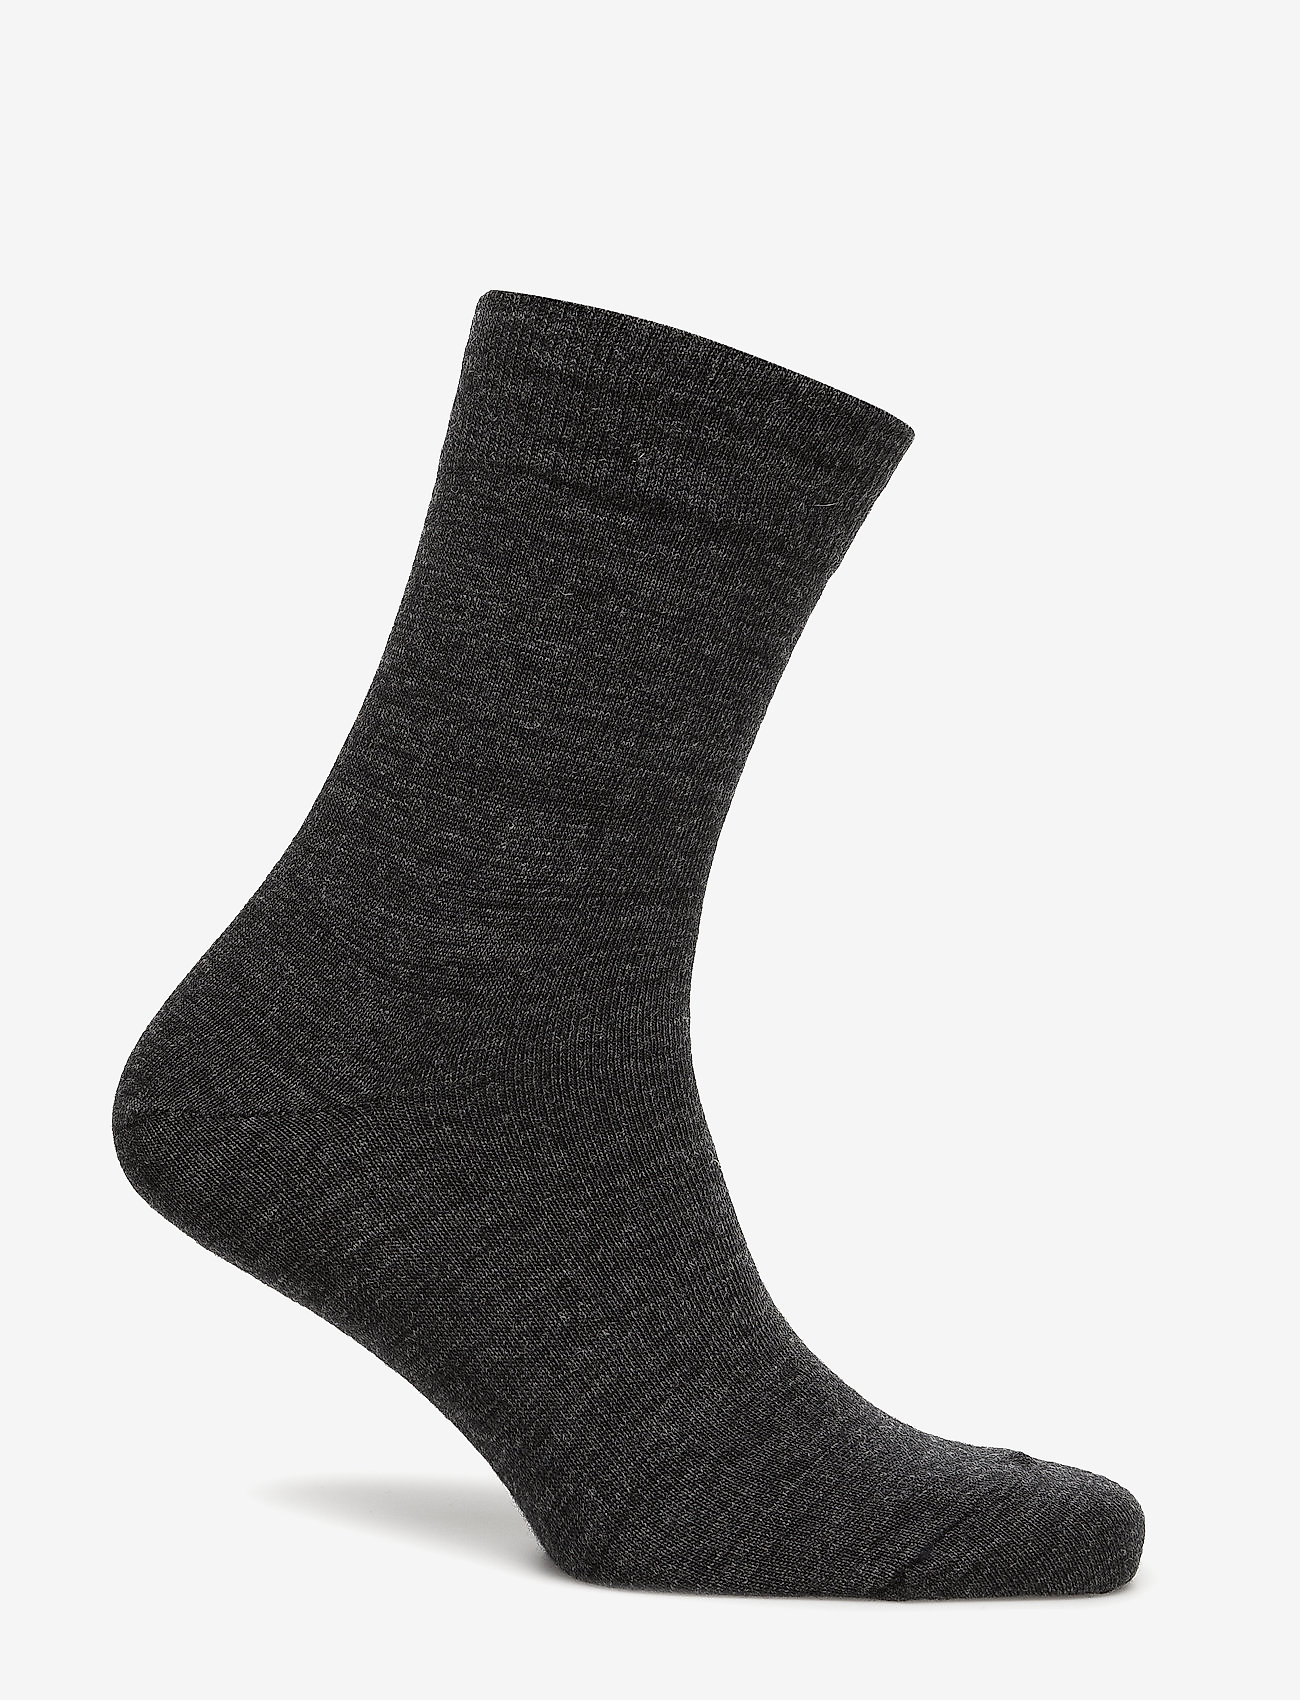 Egtved - Egtved business socks - regular socks - dark grey - 1